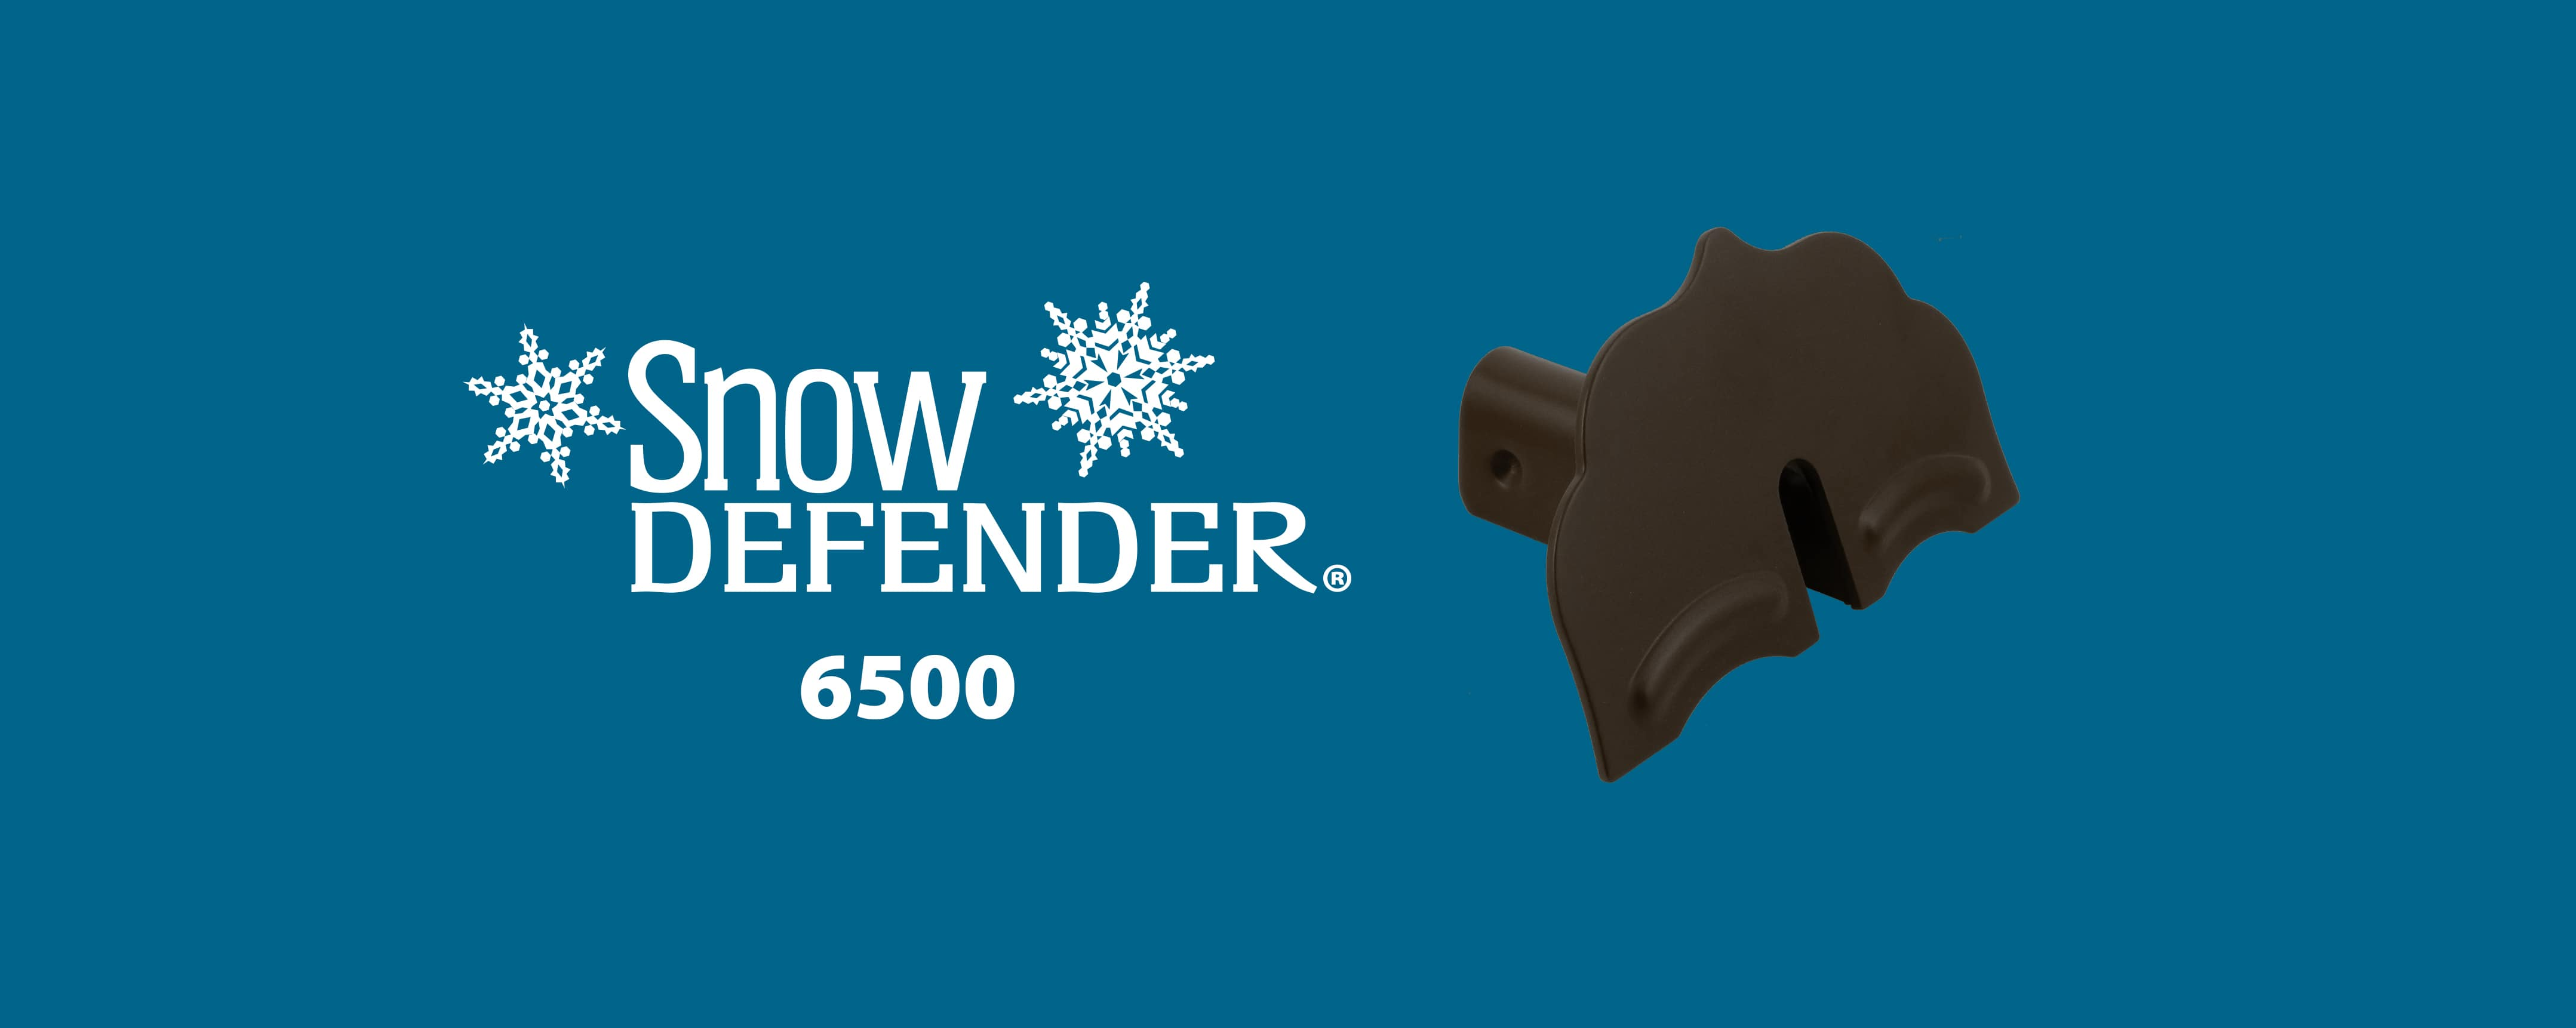 Snow Defender snow guard 6500 for metal roofing and metal panel